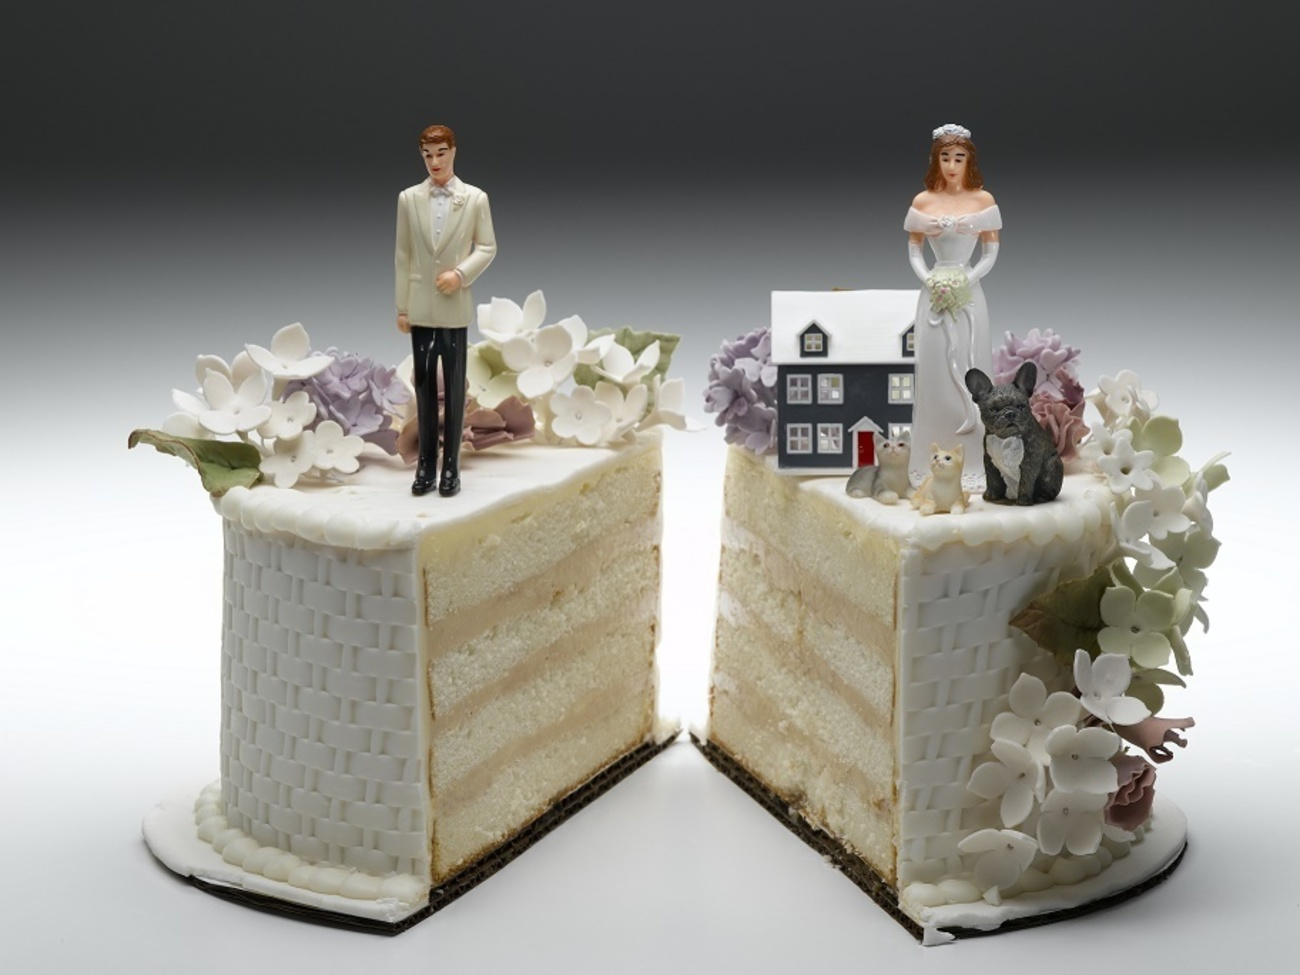 Pre-nuptial agreements? You better think twice …